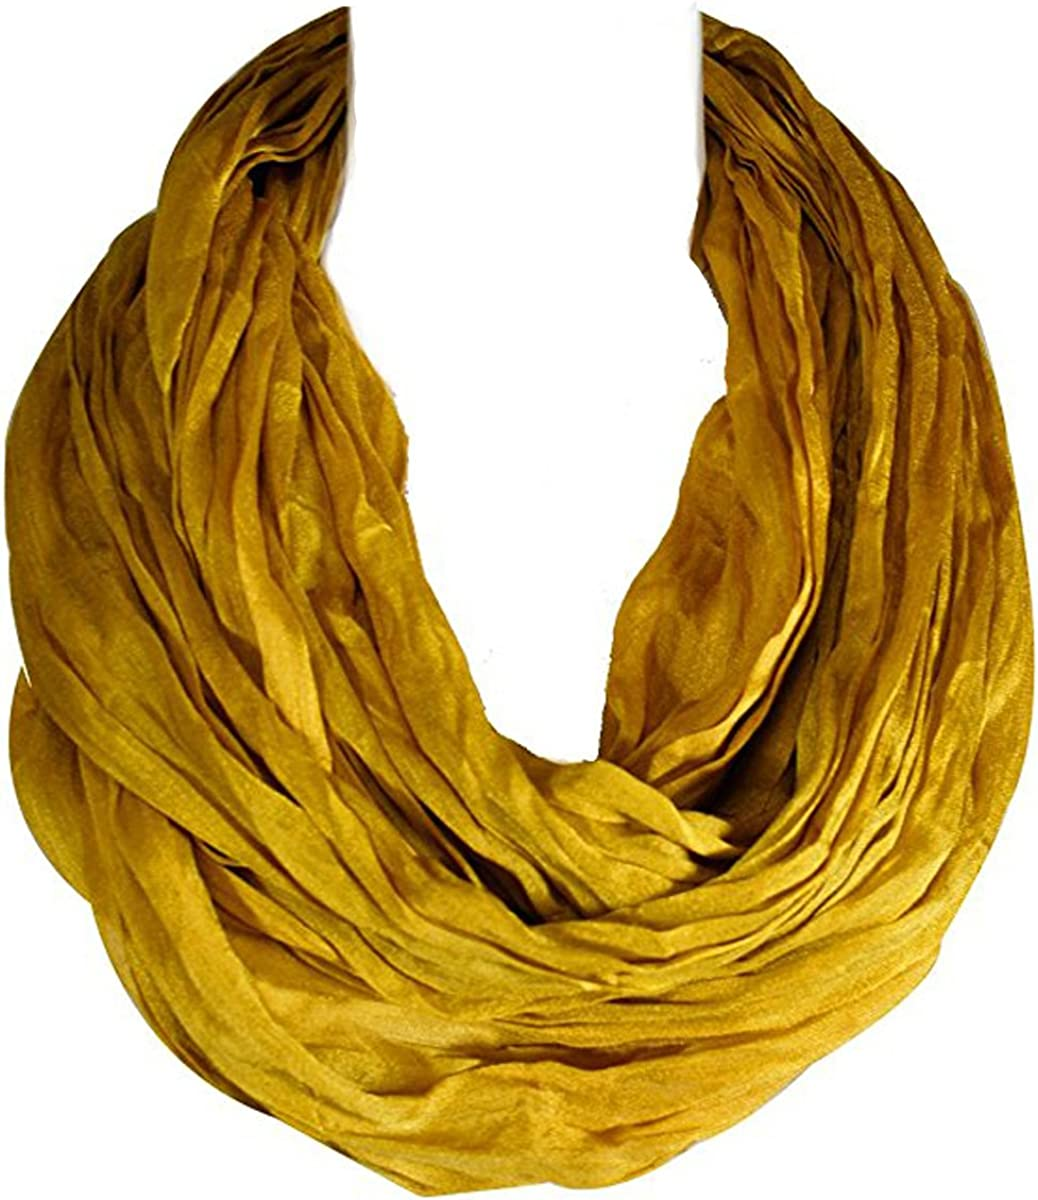 Wrapables San Max 72% OFF Francisco Mall Soft and Silky Scarf Infinity